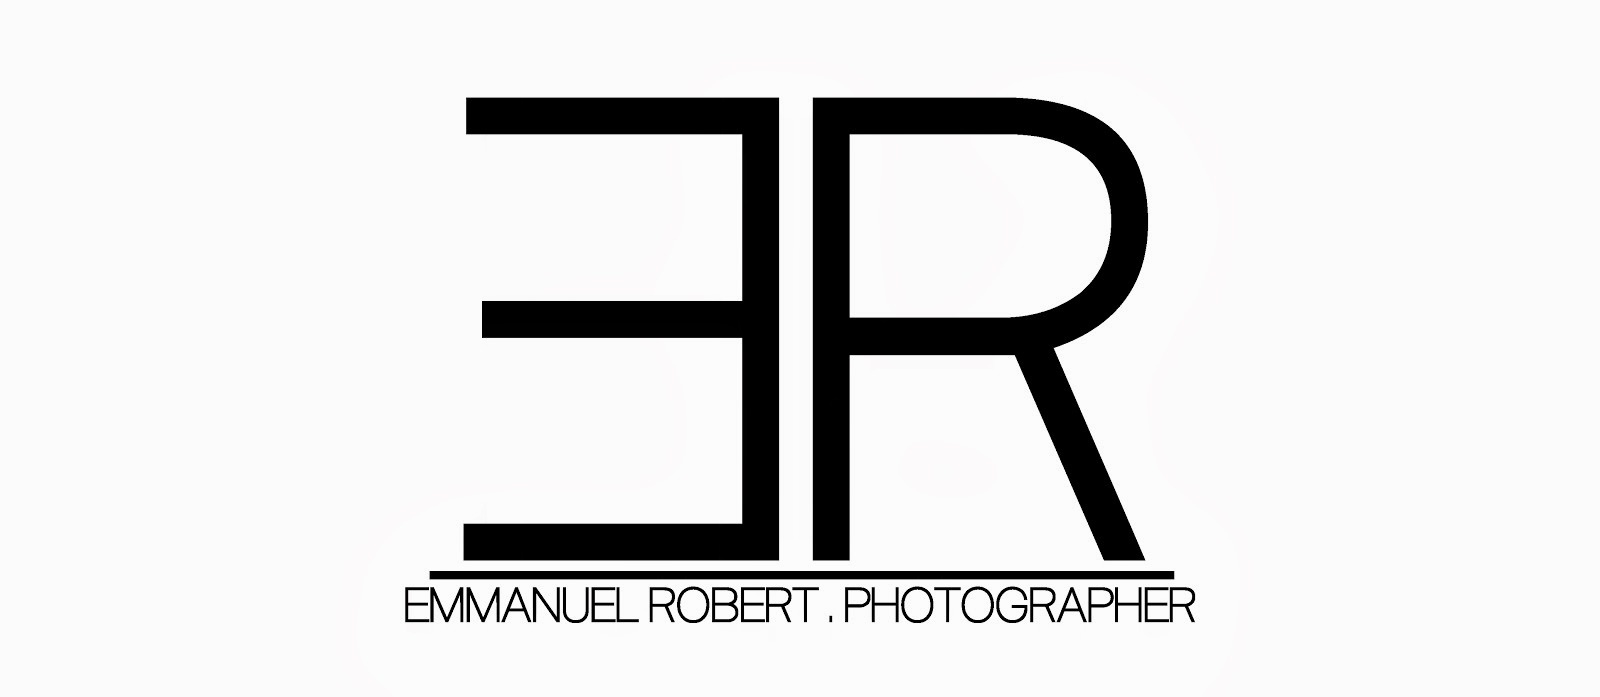 Emmanuel Robert | Photographer